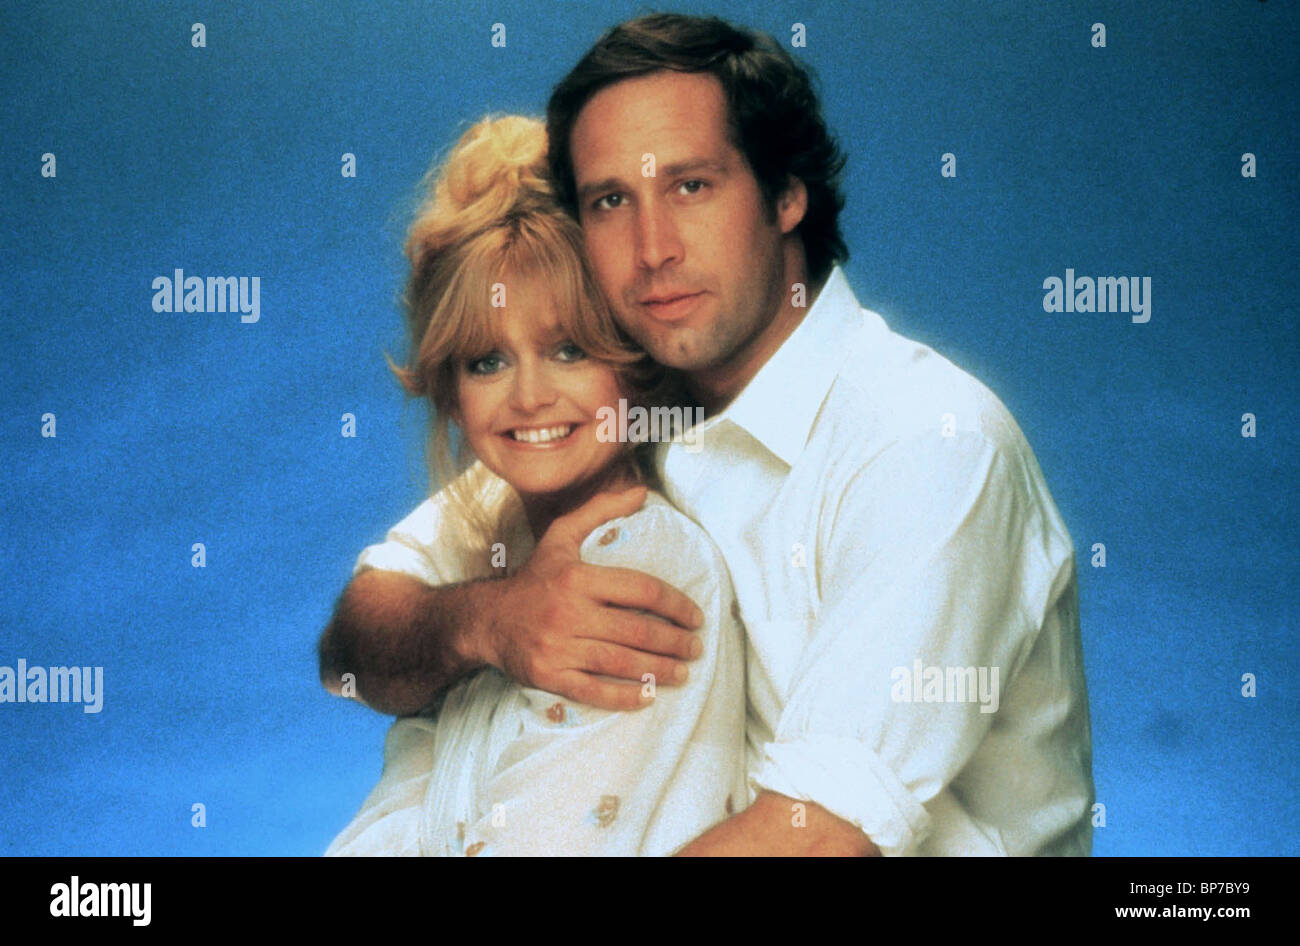 GOLDIE HAWN CHEVY CHASE SEEMS LIKE OLD TIMES 1980 Stock Photo